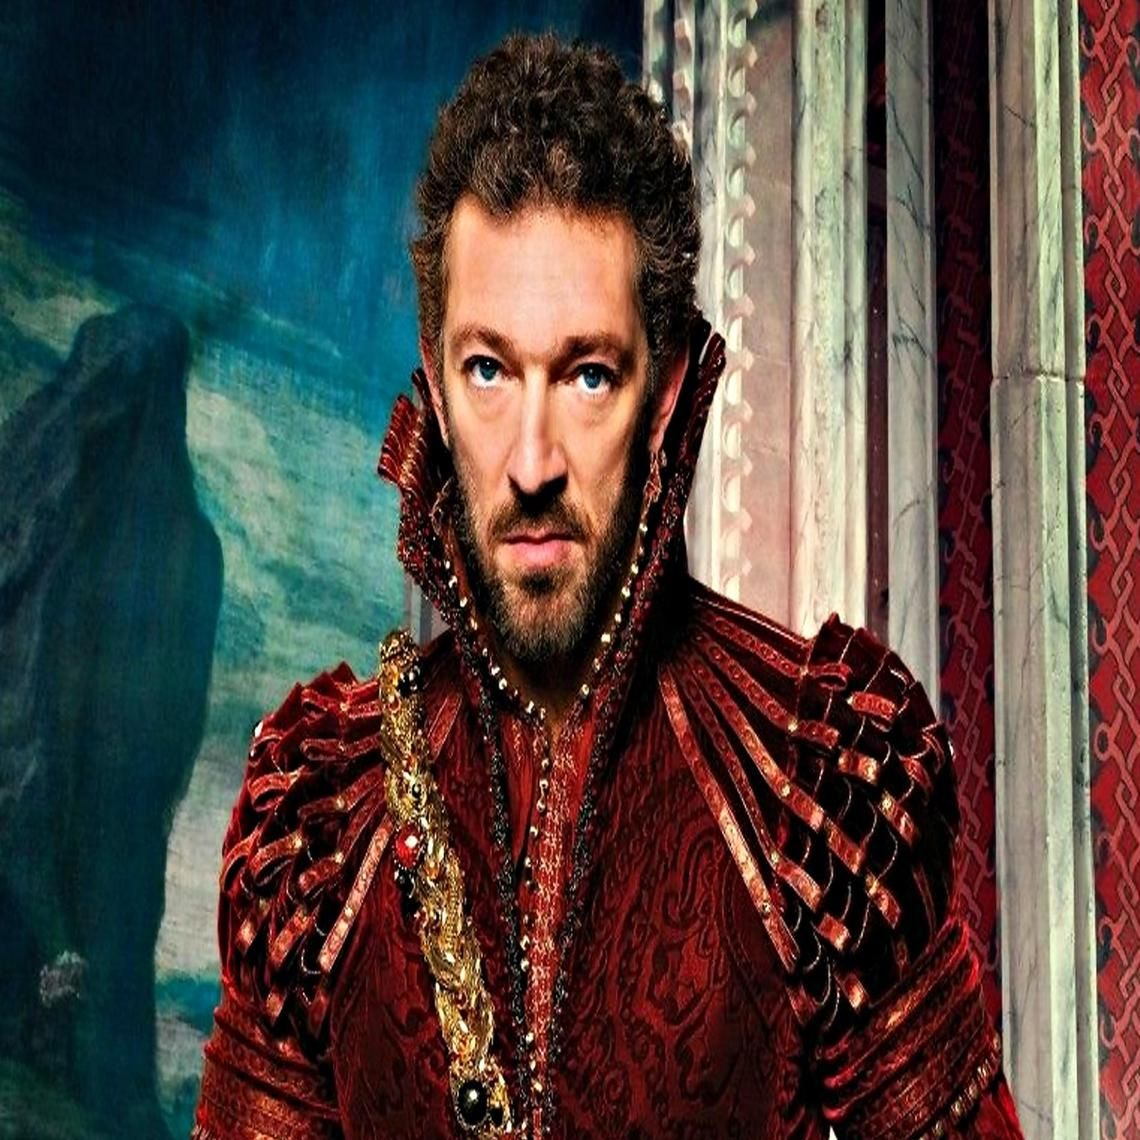 Vincent Cassel as the Prince